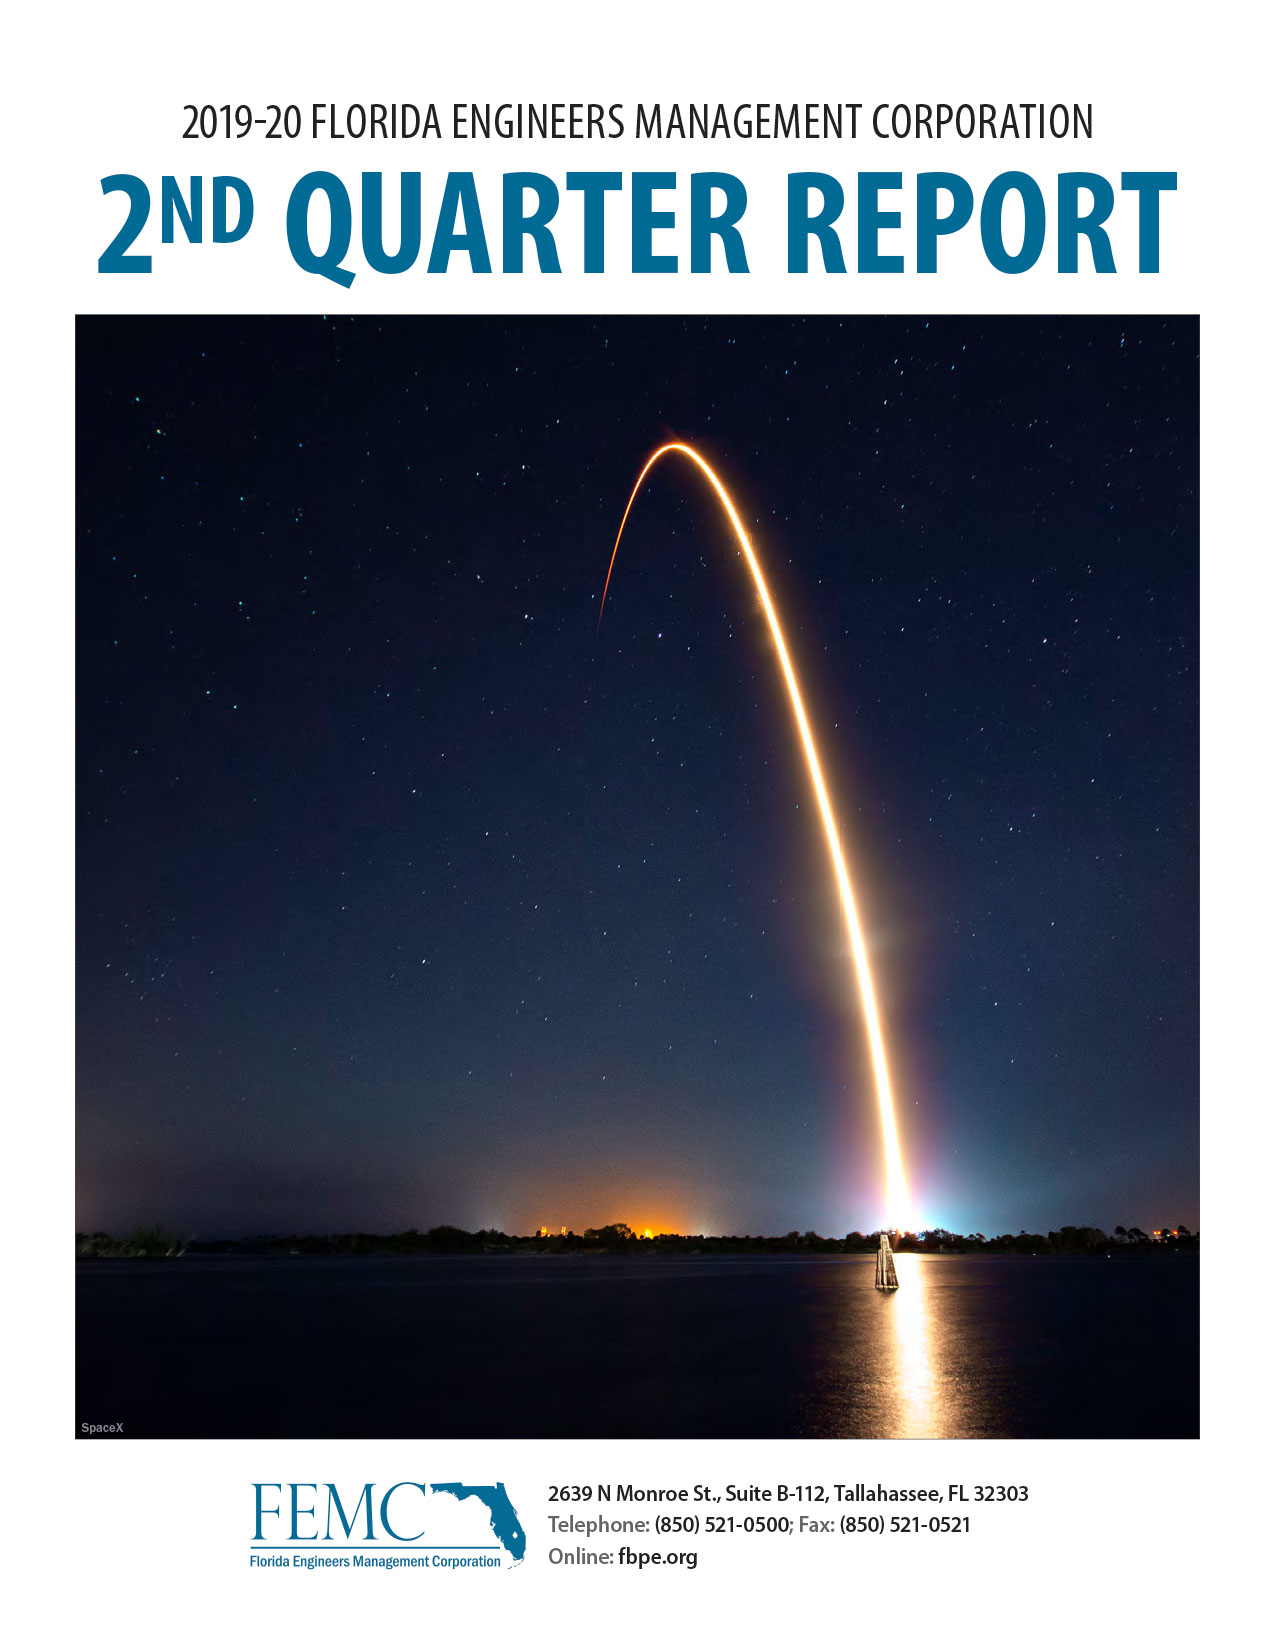 Cover of the 2019-20 Florida Engineers Management Corporation 2nd Quarter Report